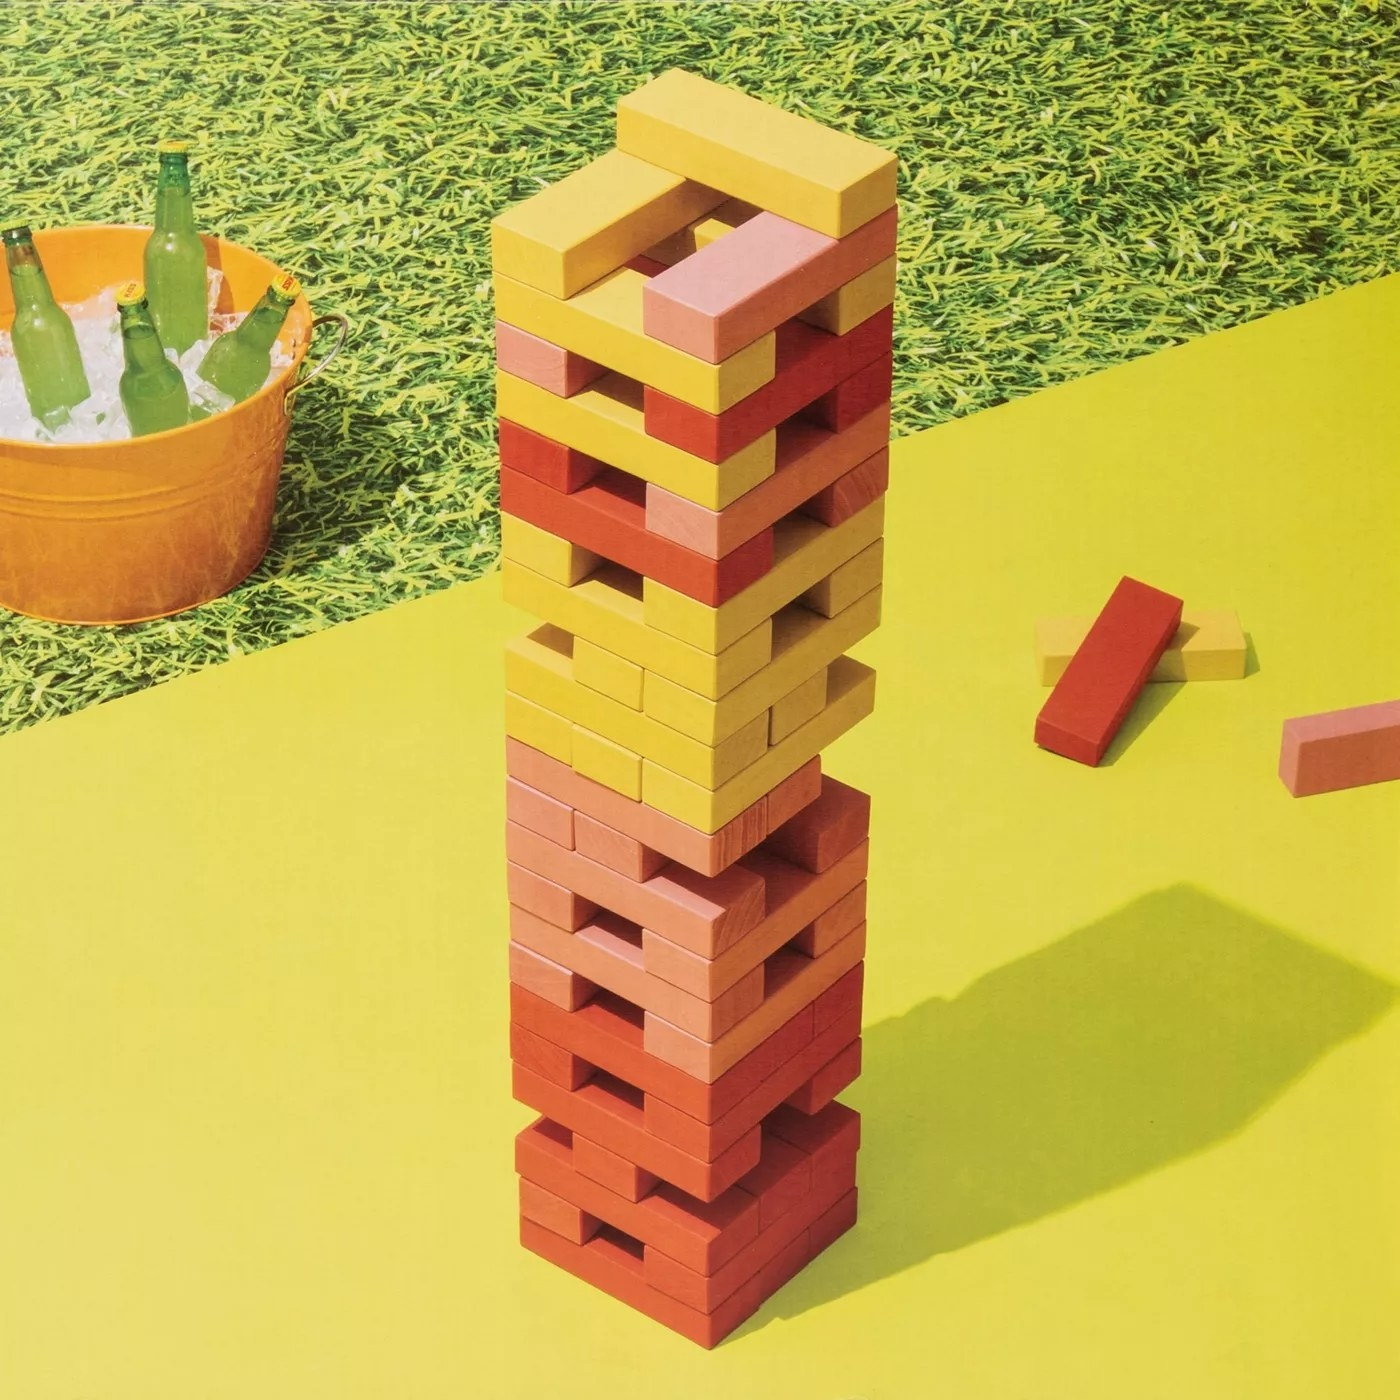 The jumbo tower has pink, red and yellow blocks